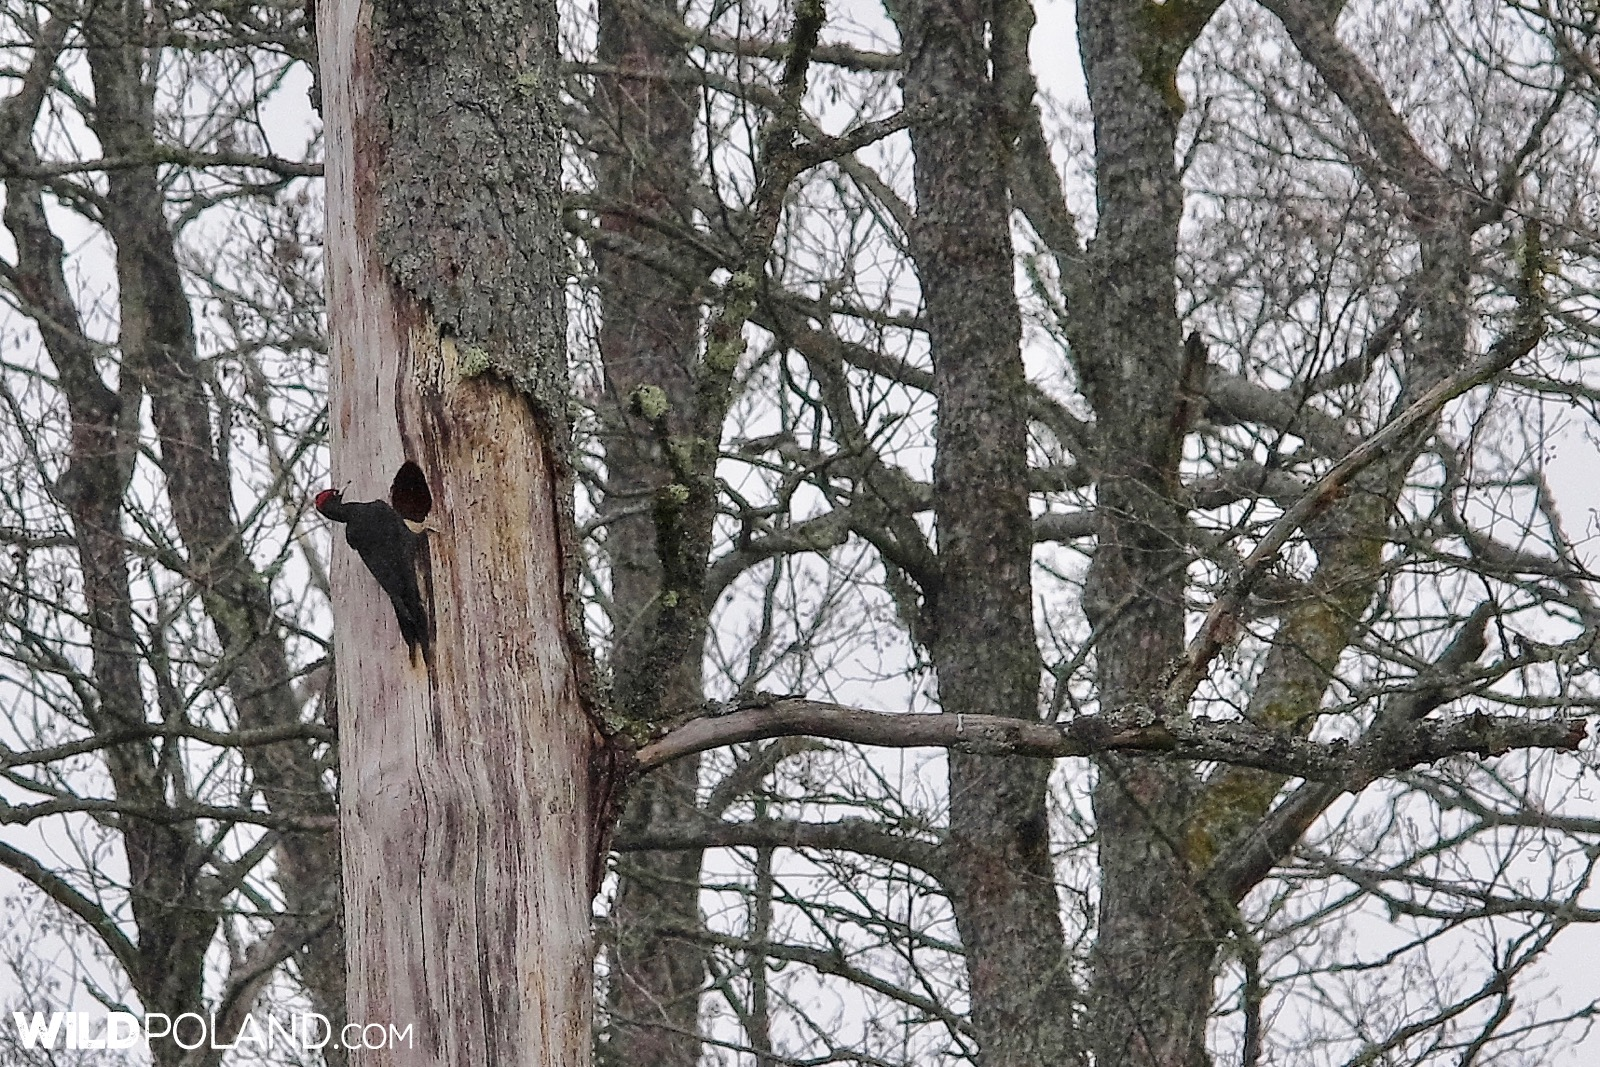 Black Woodpecker at the nest hole in Białowieża Forest, photo by Andrzej Petryna